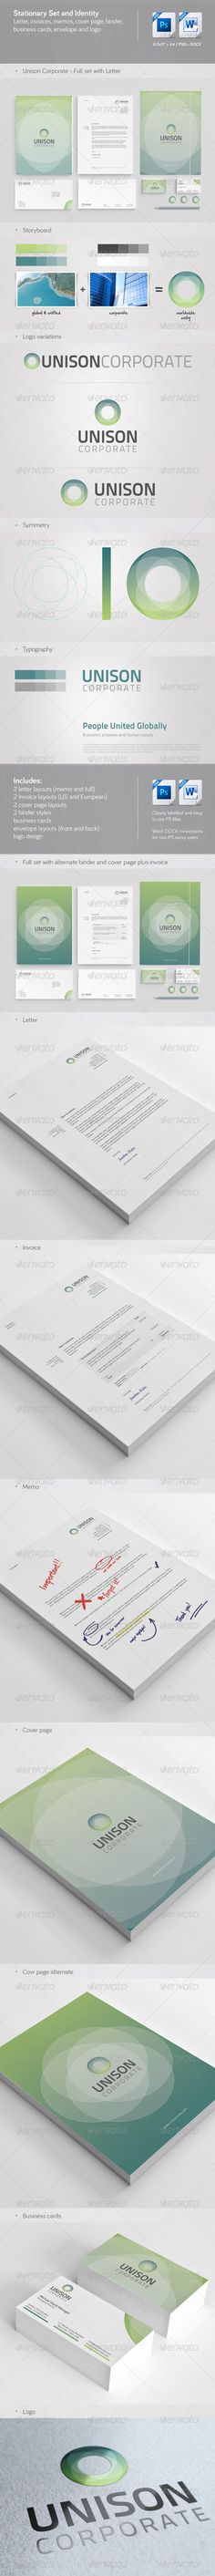 Buy Unison: Corporate Stationery, Invoice and Identity by chrisatlemon on GraphicRiver. File description: Stationery and corporate identity set featuring logo design, invoices, letter, memo and cover page . Corporate Stationary, Corporate Brochure, Corporate Identity, Identity Design, Logo Design, Invoice Layout, Invoice Format, Enterprise Logo, Cover Page Template